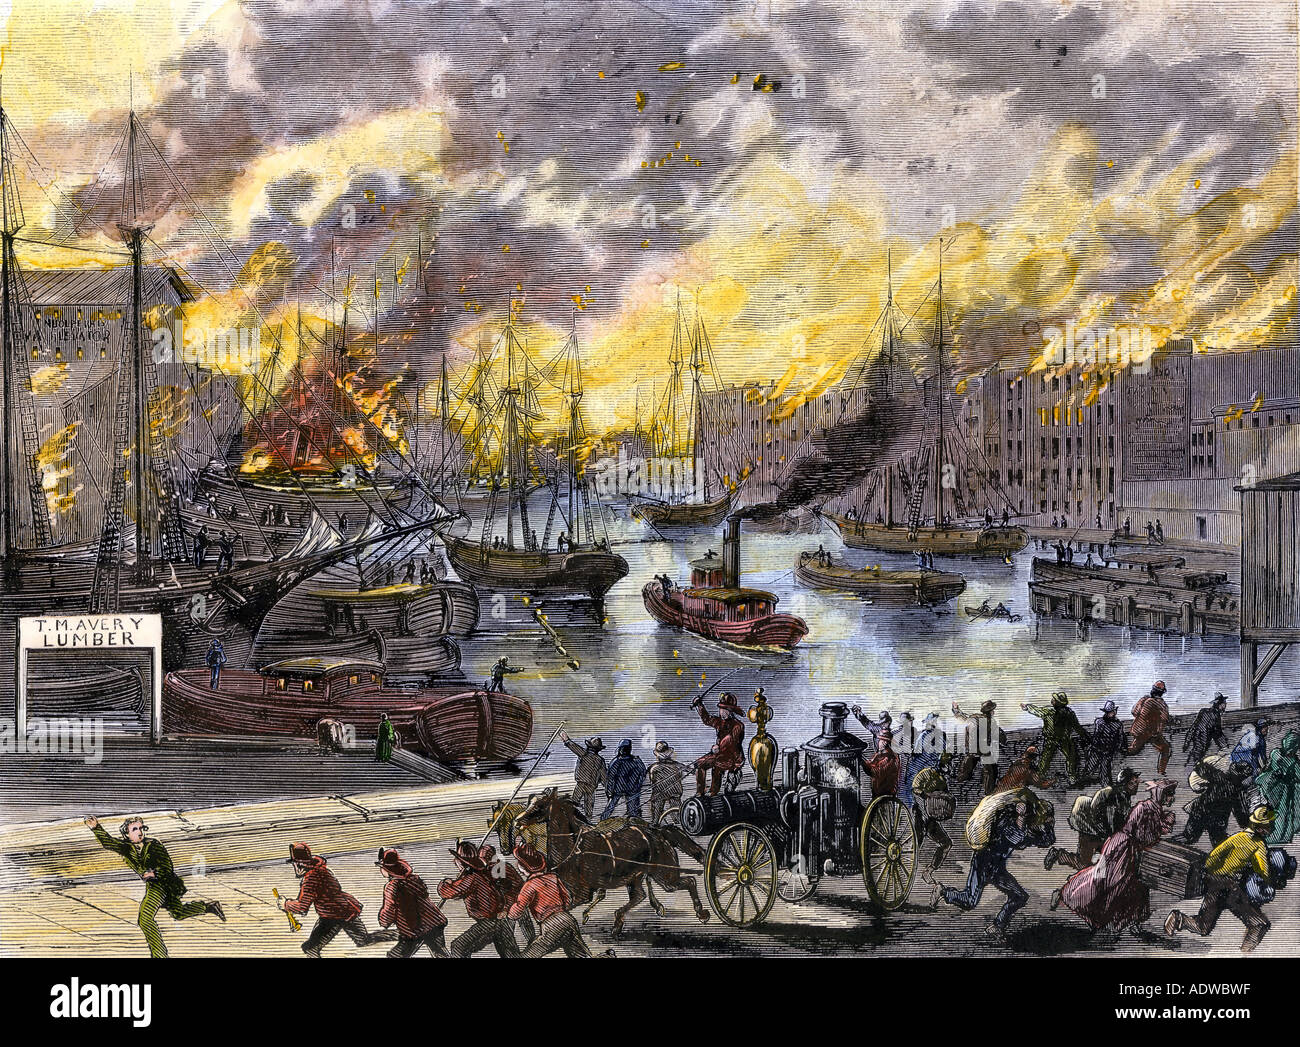 Flaming buildings and boats aong the Chicago River during the Great Fire 1871. Hand-colored woodcut - Stock Image